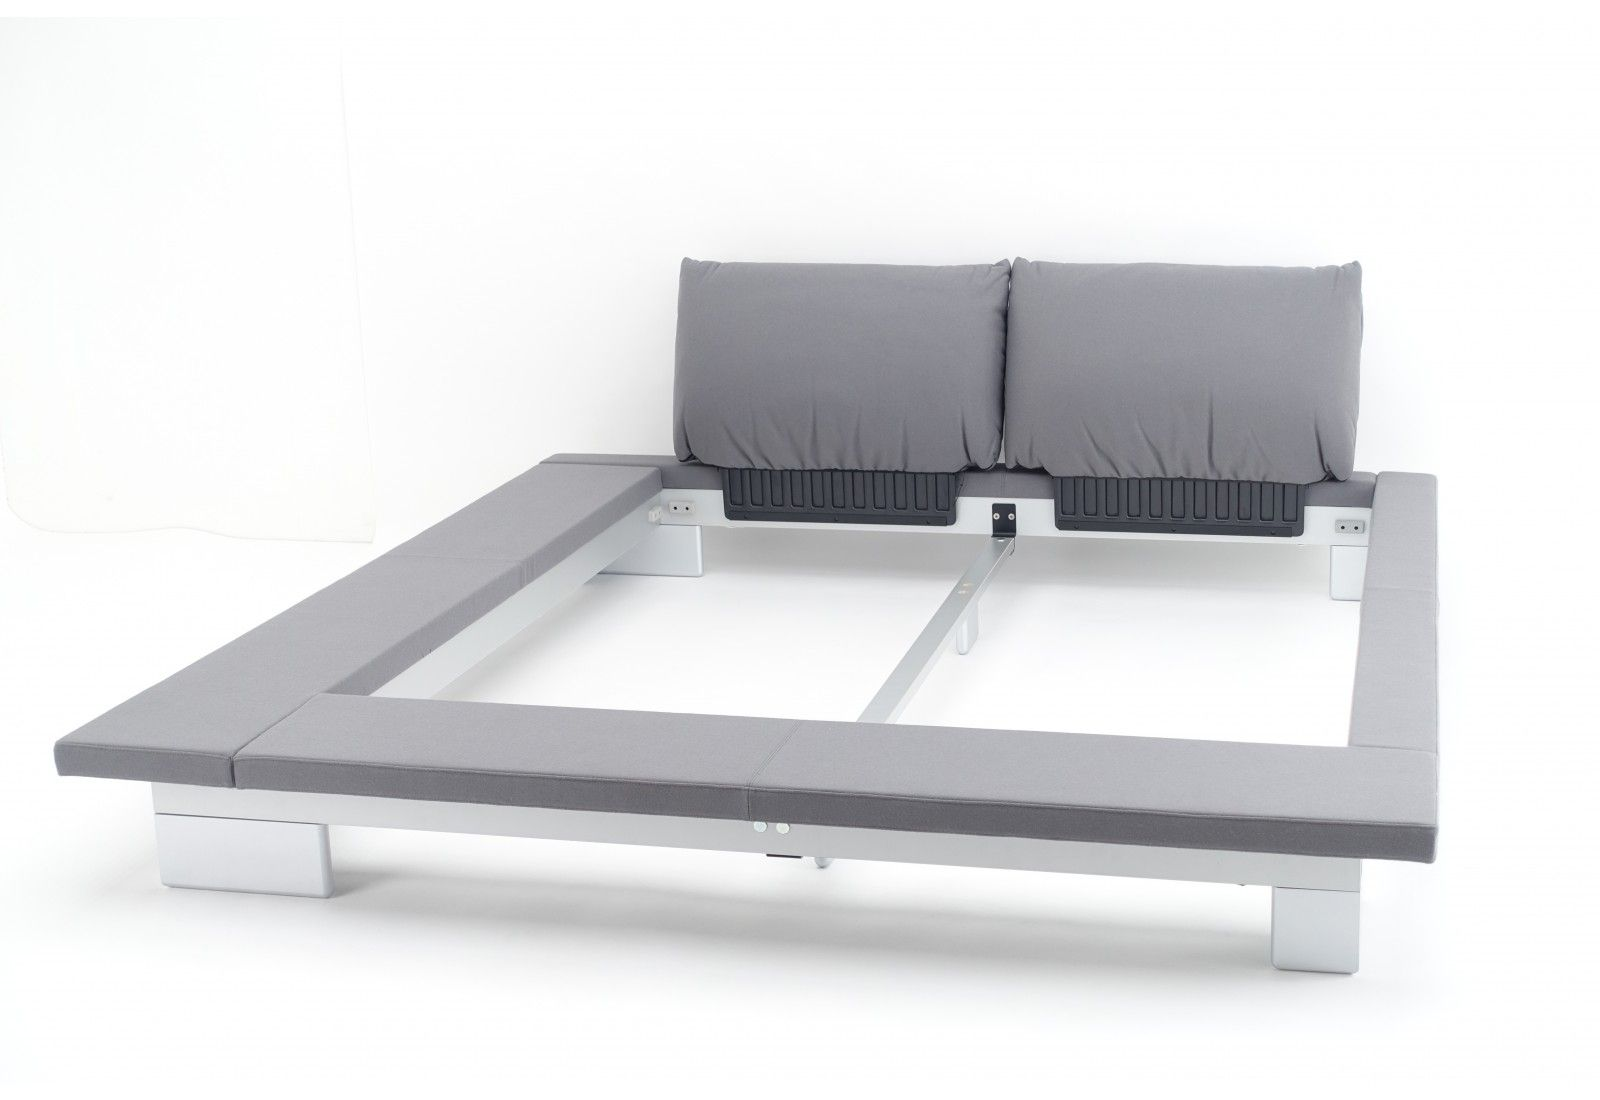 Peter Maly Bed By Ligne Roset Google Search Furniture In 2019 - Maly-platform-bed-by-ligne-roset